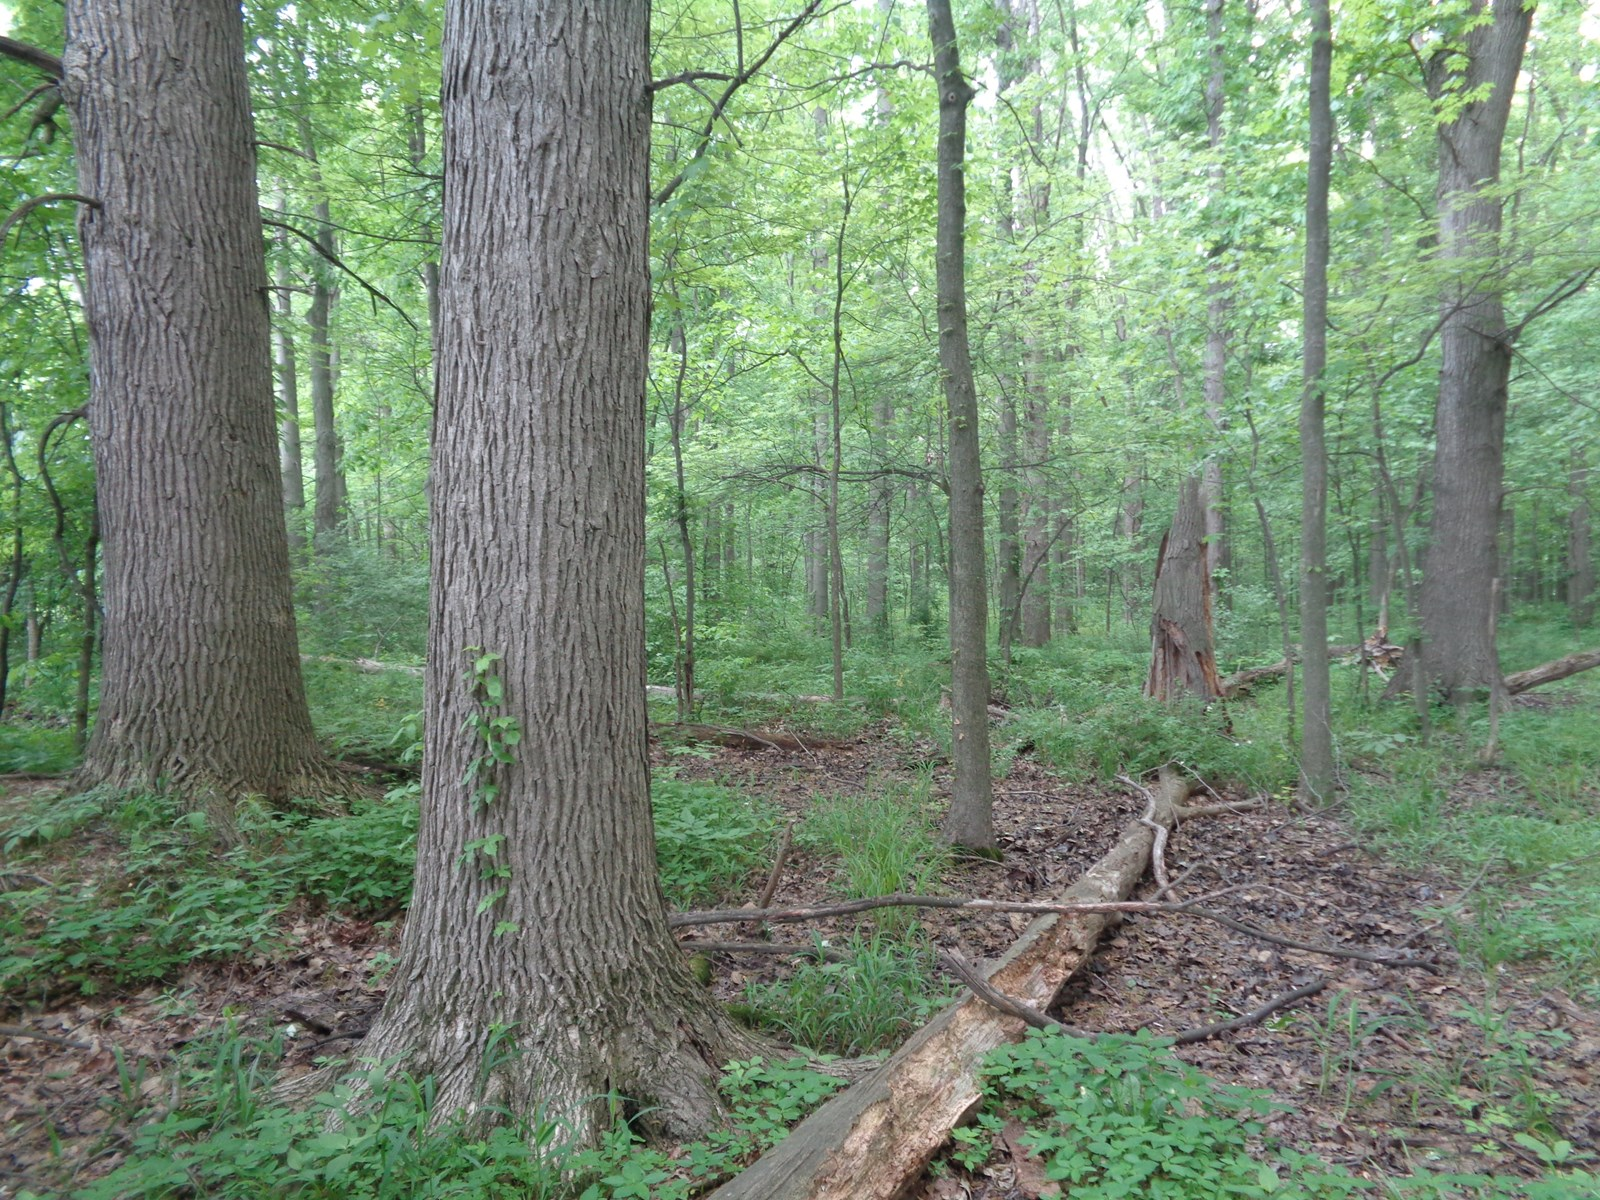 Real Estate Auction with Timber, Tillable & Hunting Ground